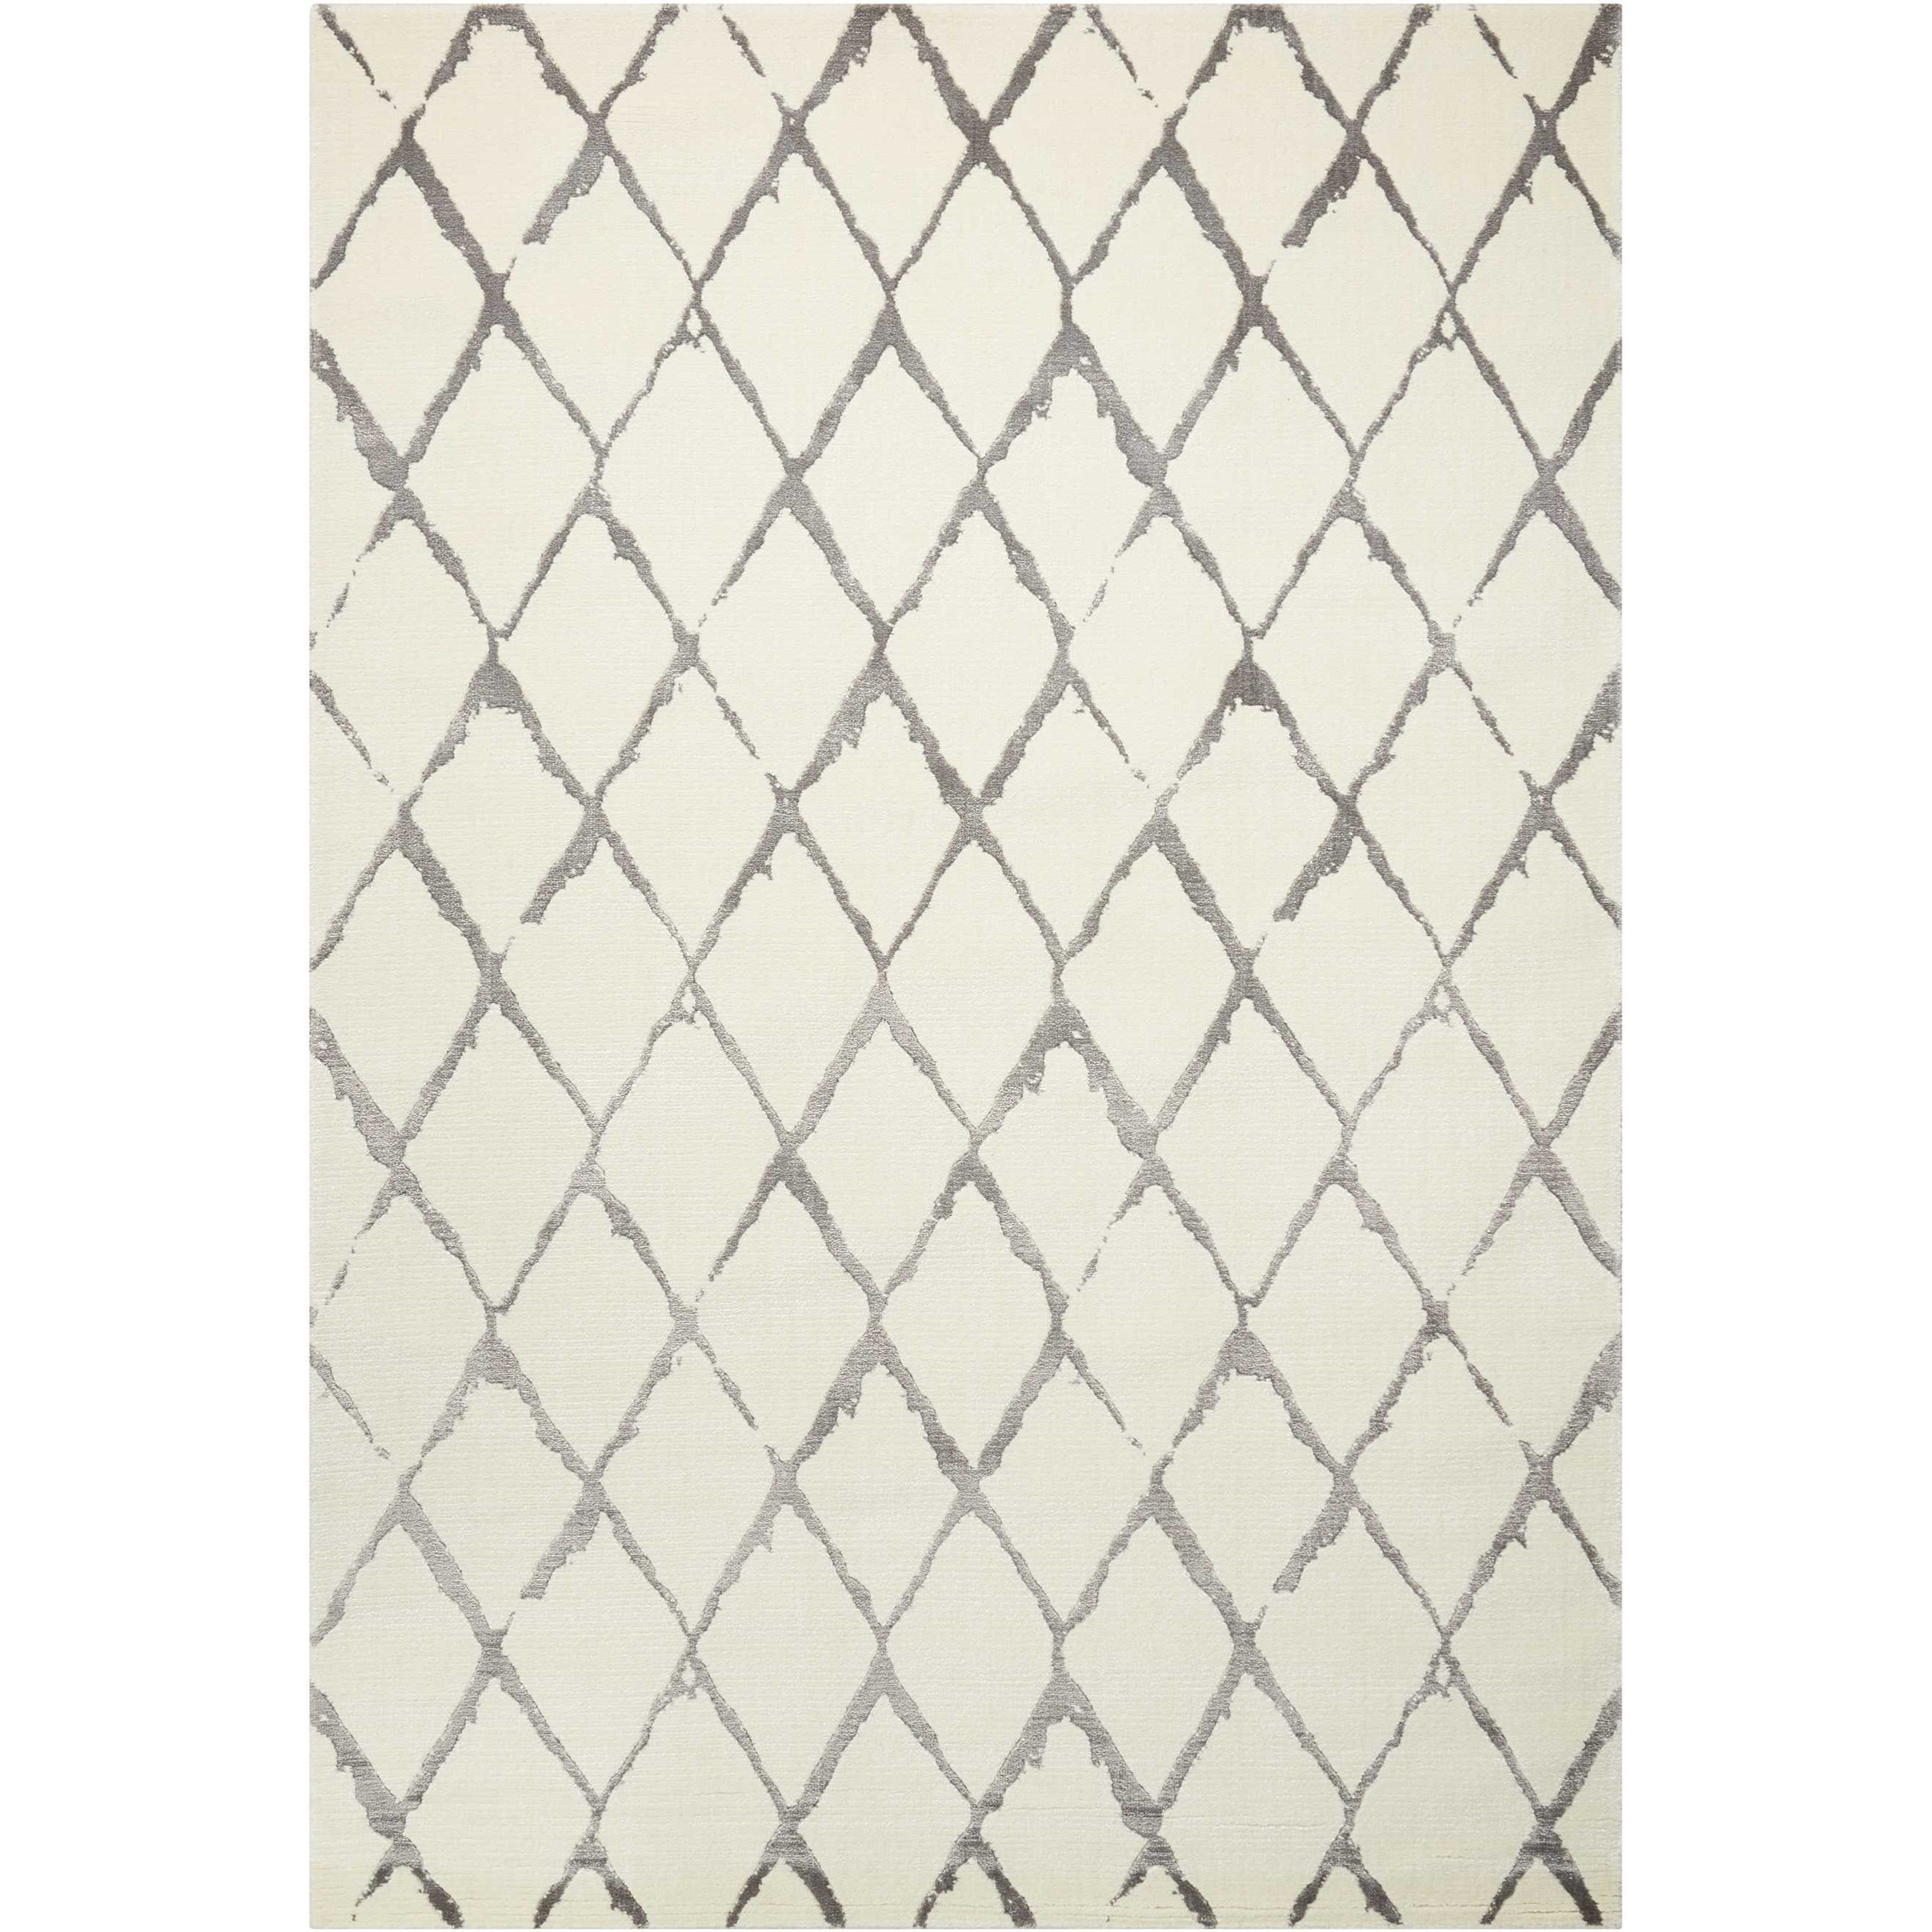 Twilight1 12' X 15' Iv/Grey Rug by Nourison at Home Collections Furniture